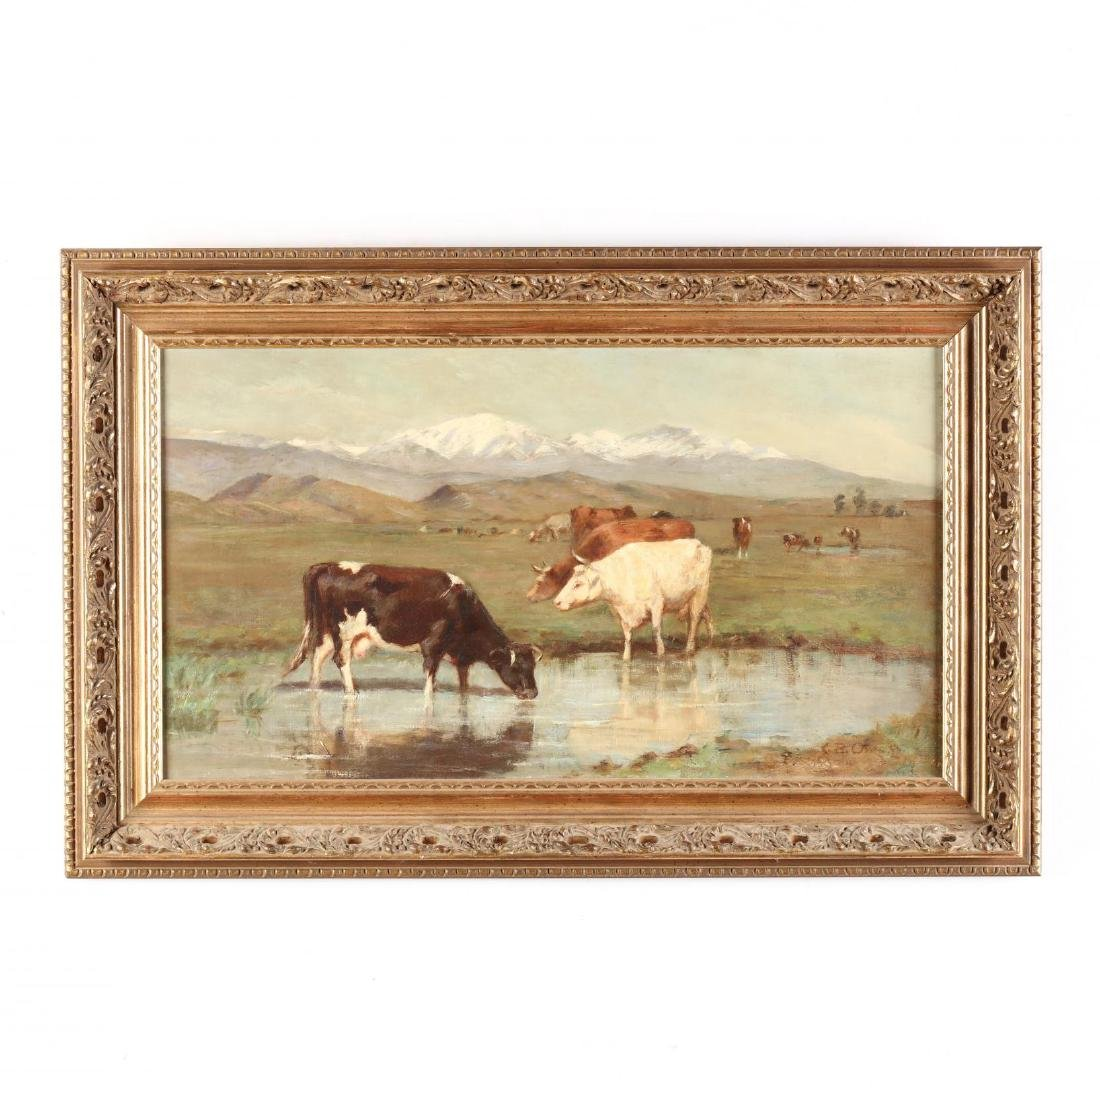 Antique Western Landscape Painting with Cattle